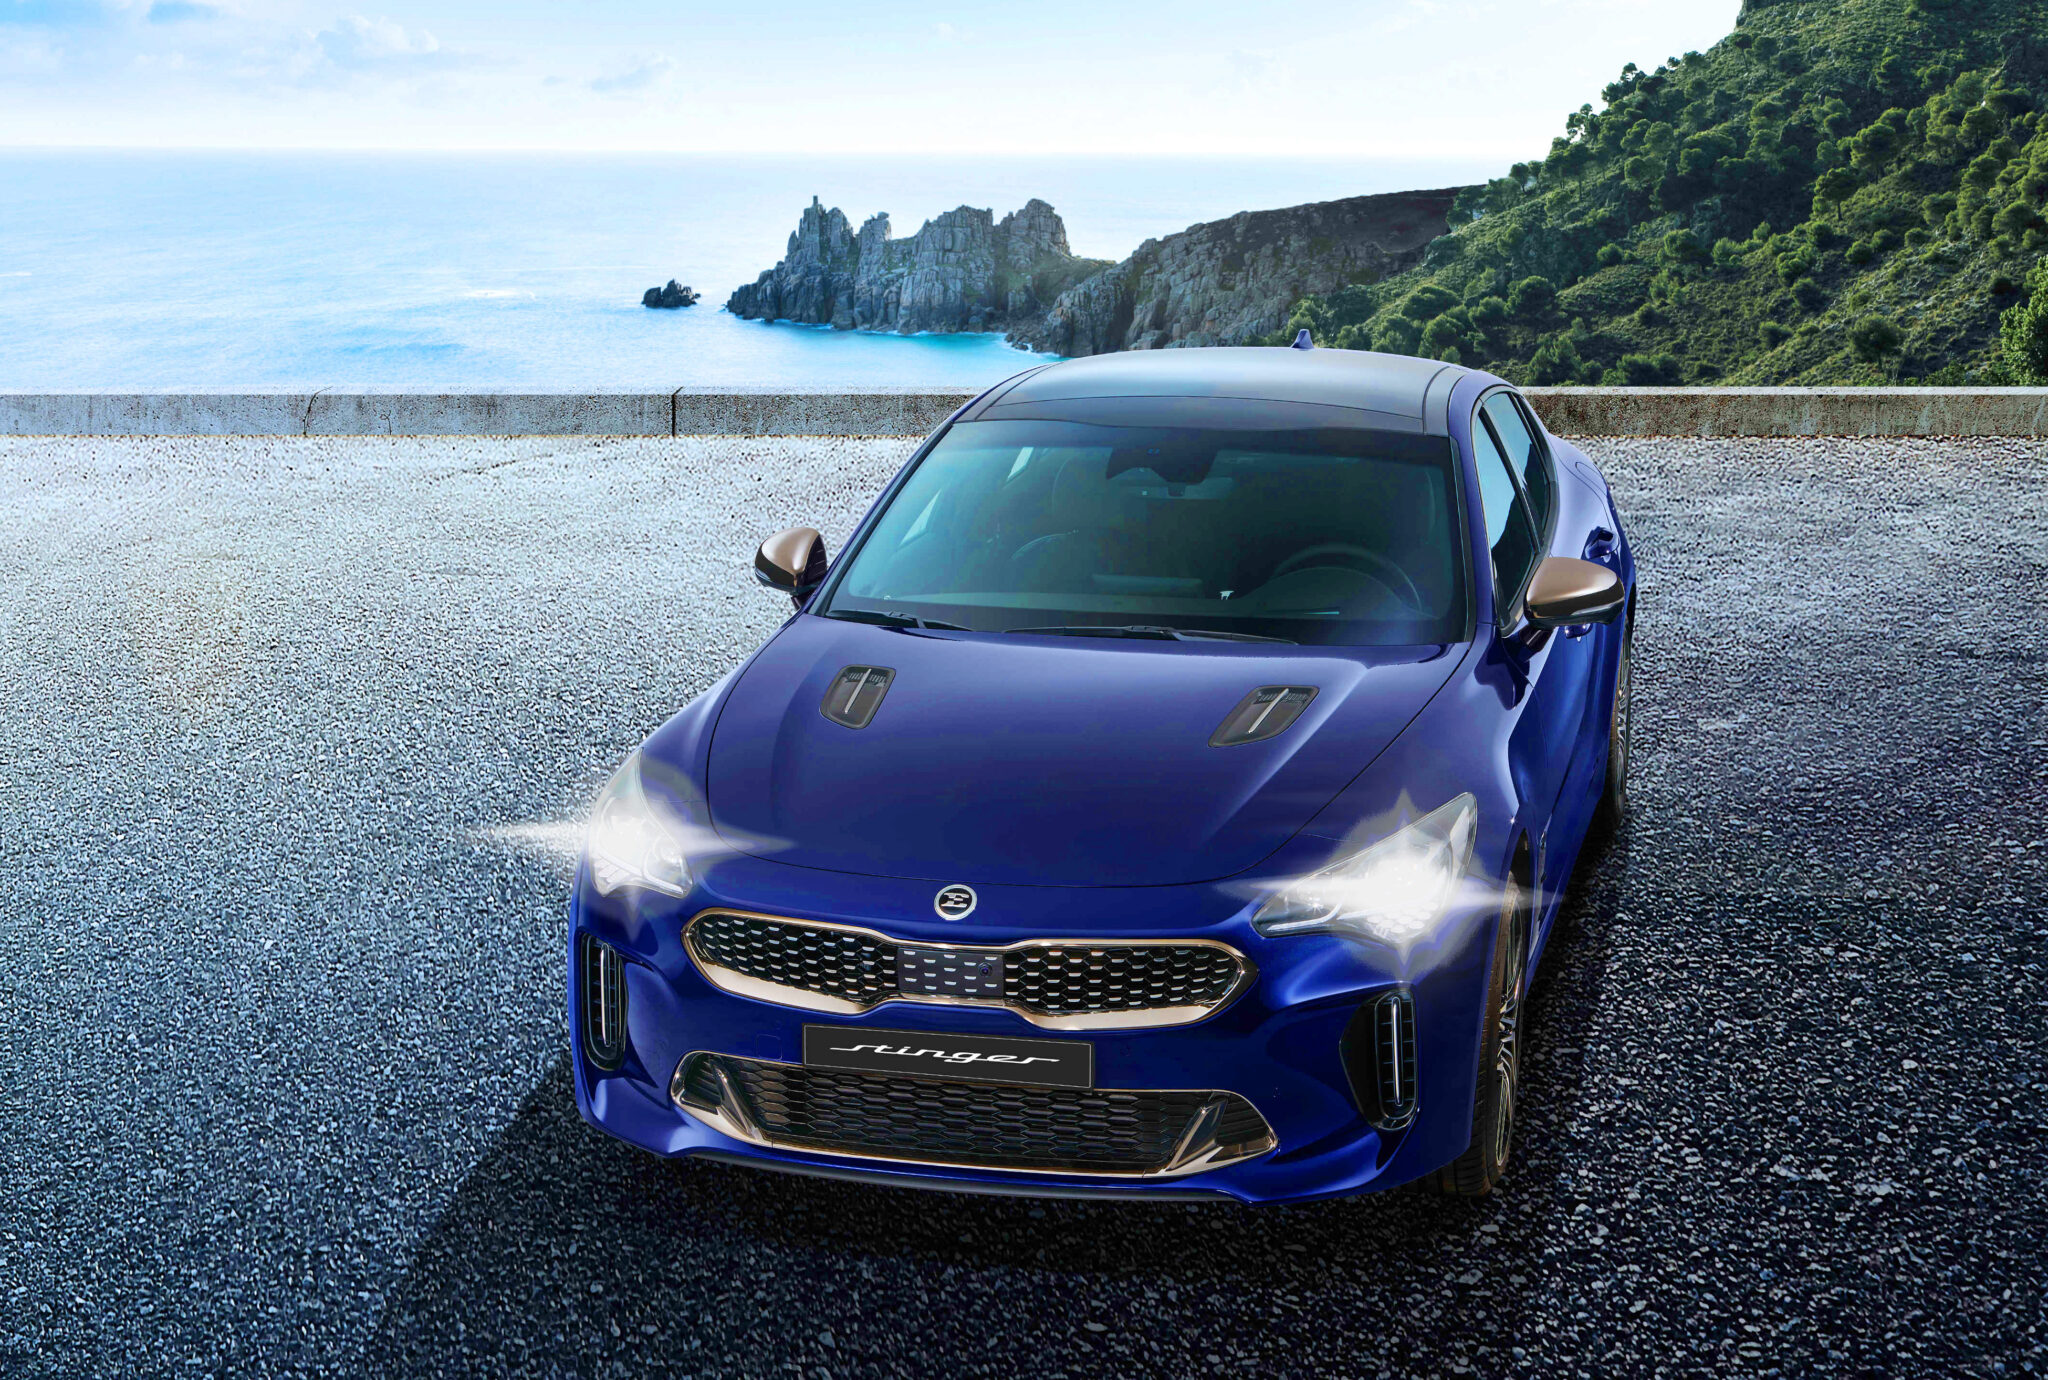 THE KIA STINGER MUSCLES UP FOR 2022